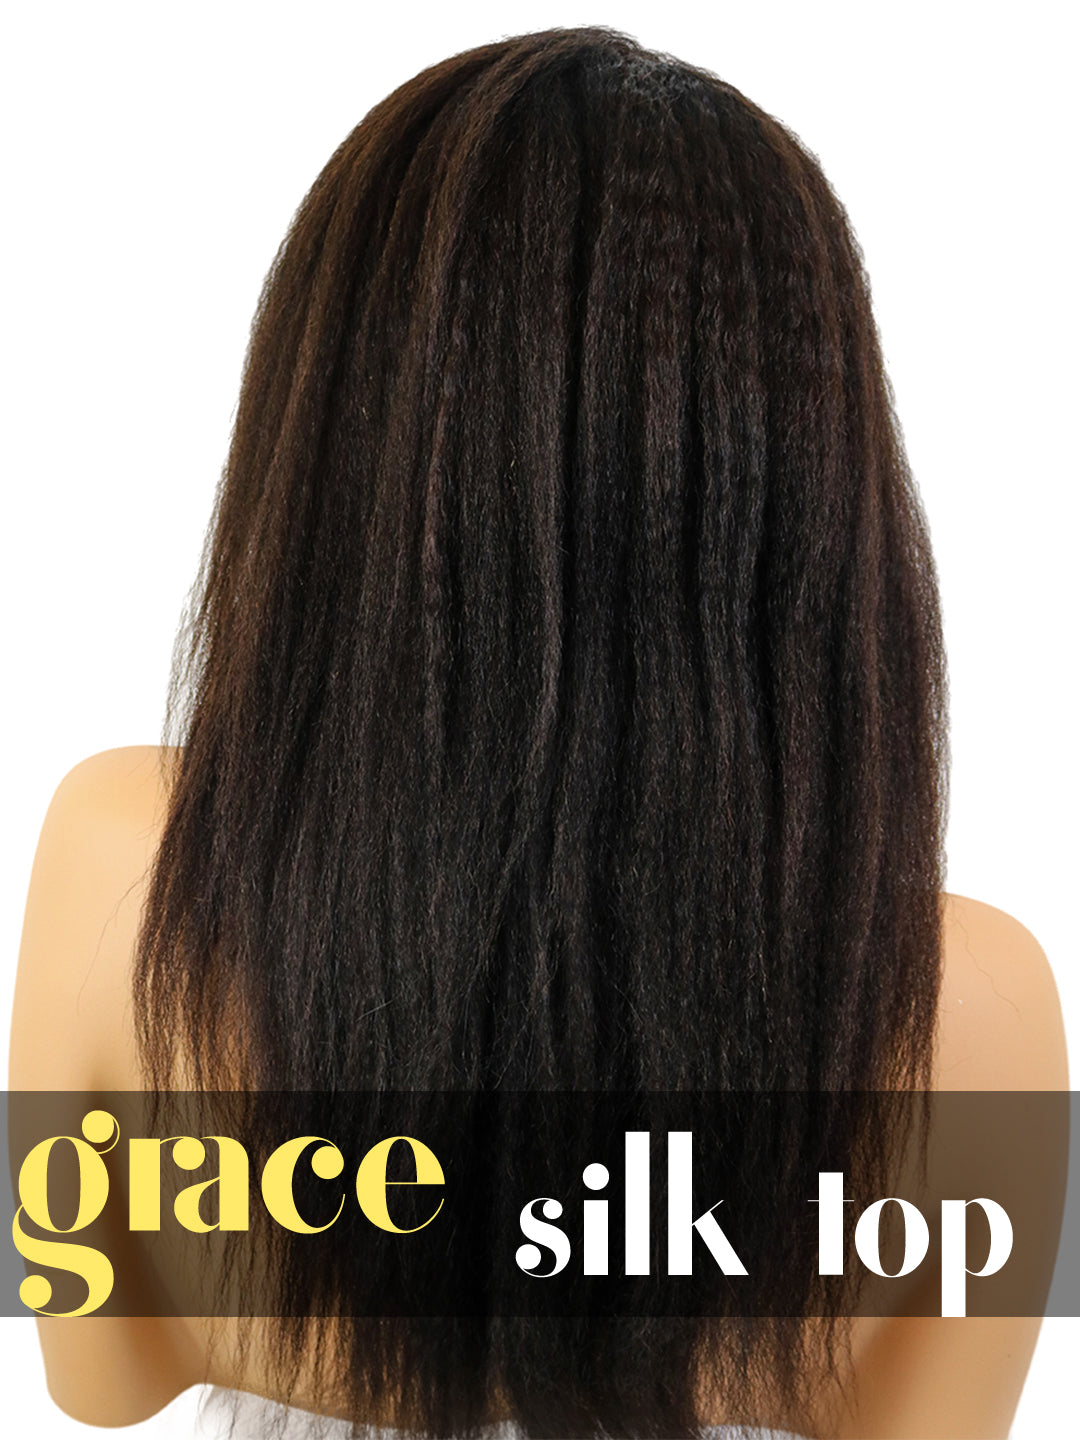 SILK TOP LACE WIG: Kinky Straight